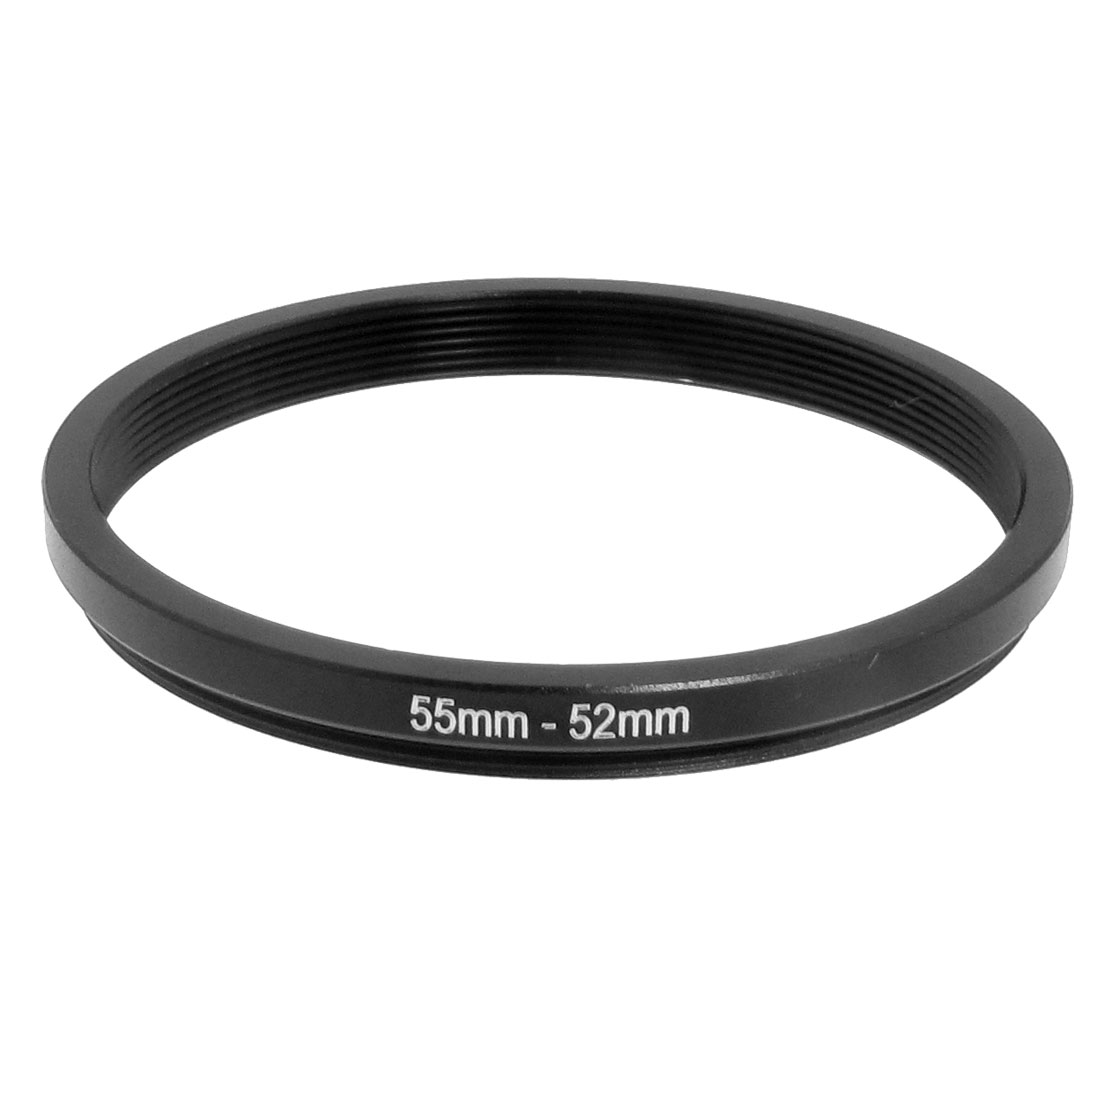 55mm-52mm 55mm to 52mm Black Step Down Ring Adapter for Camera